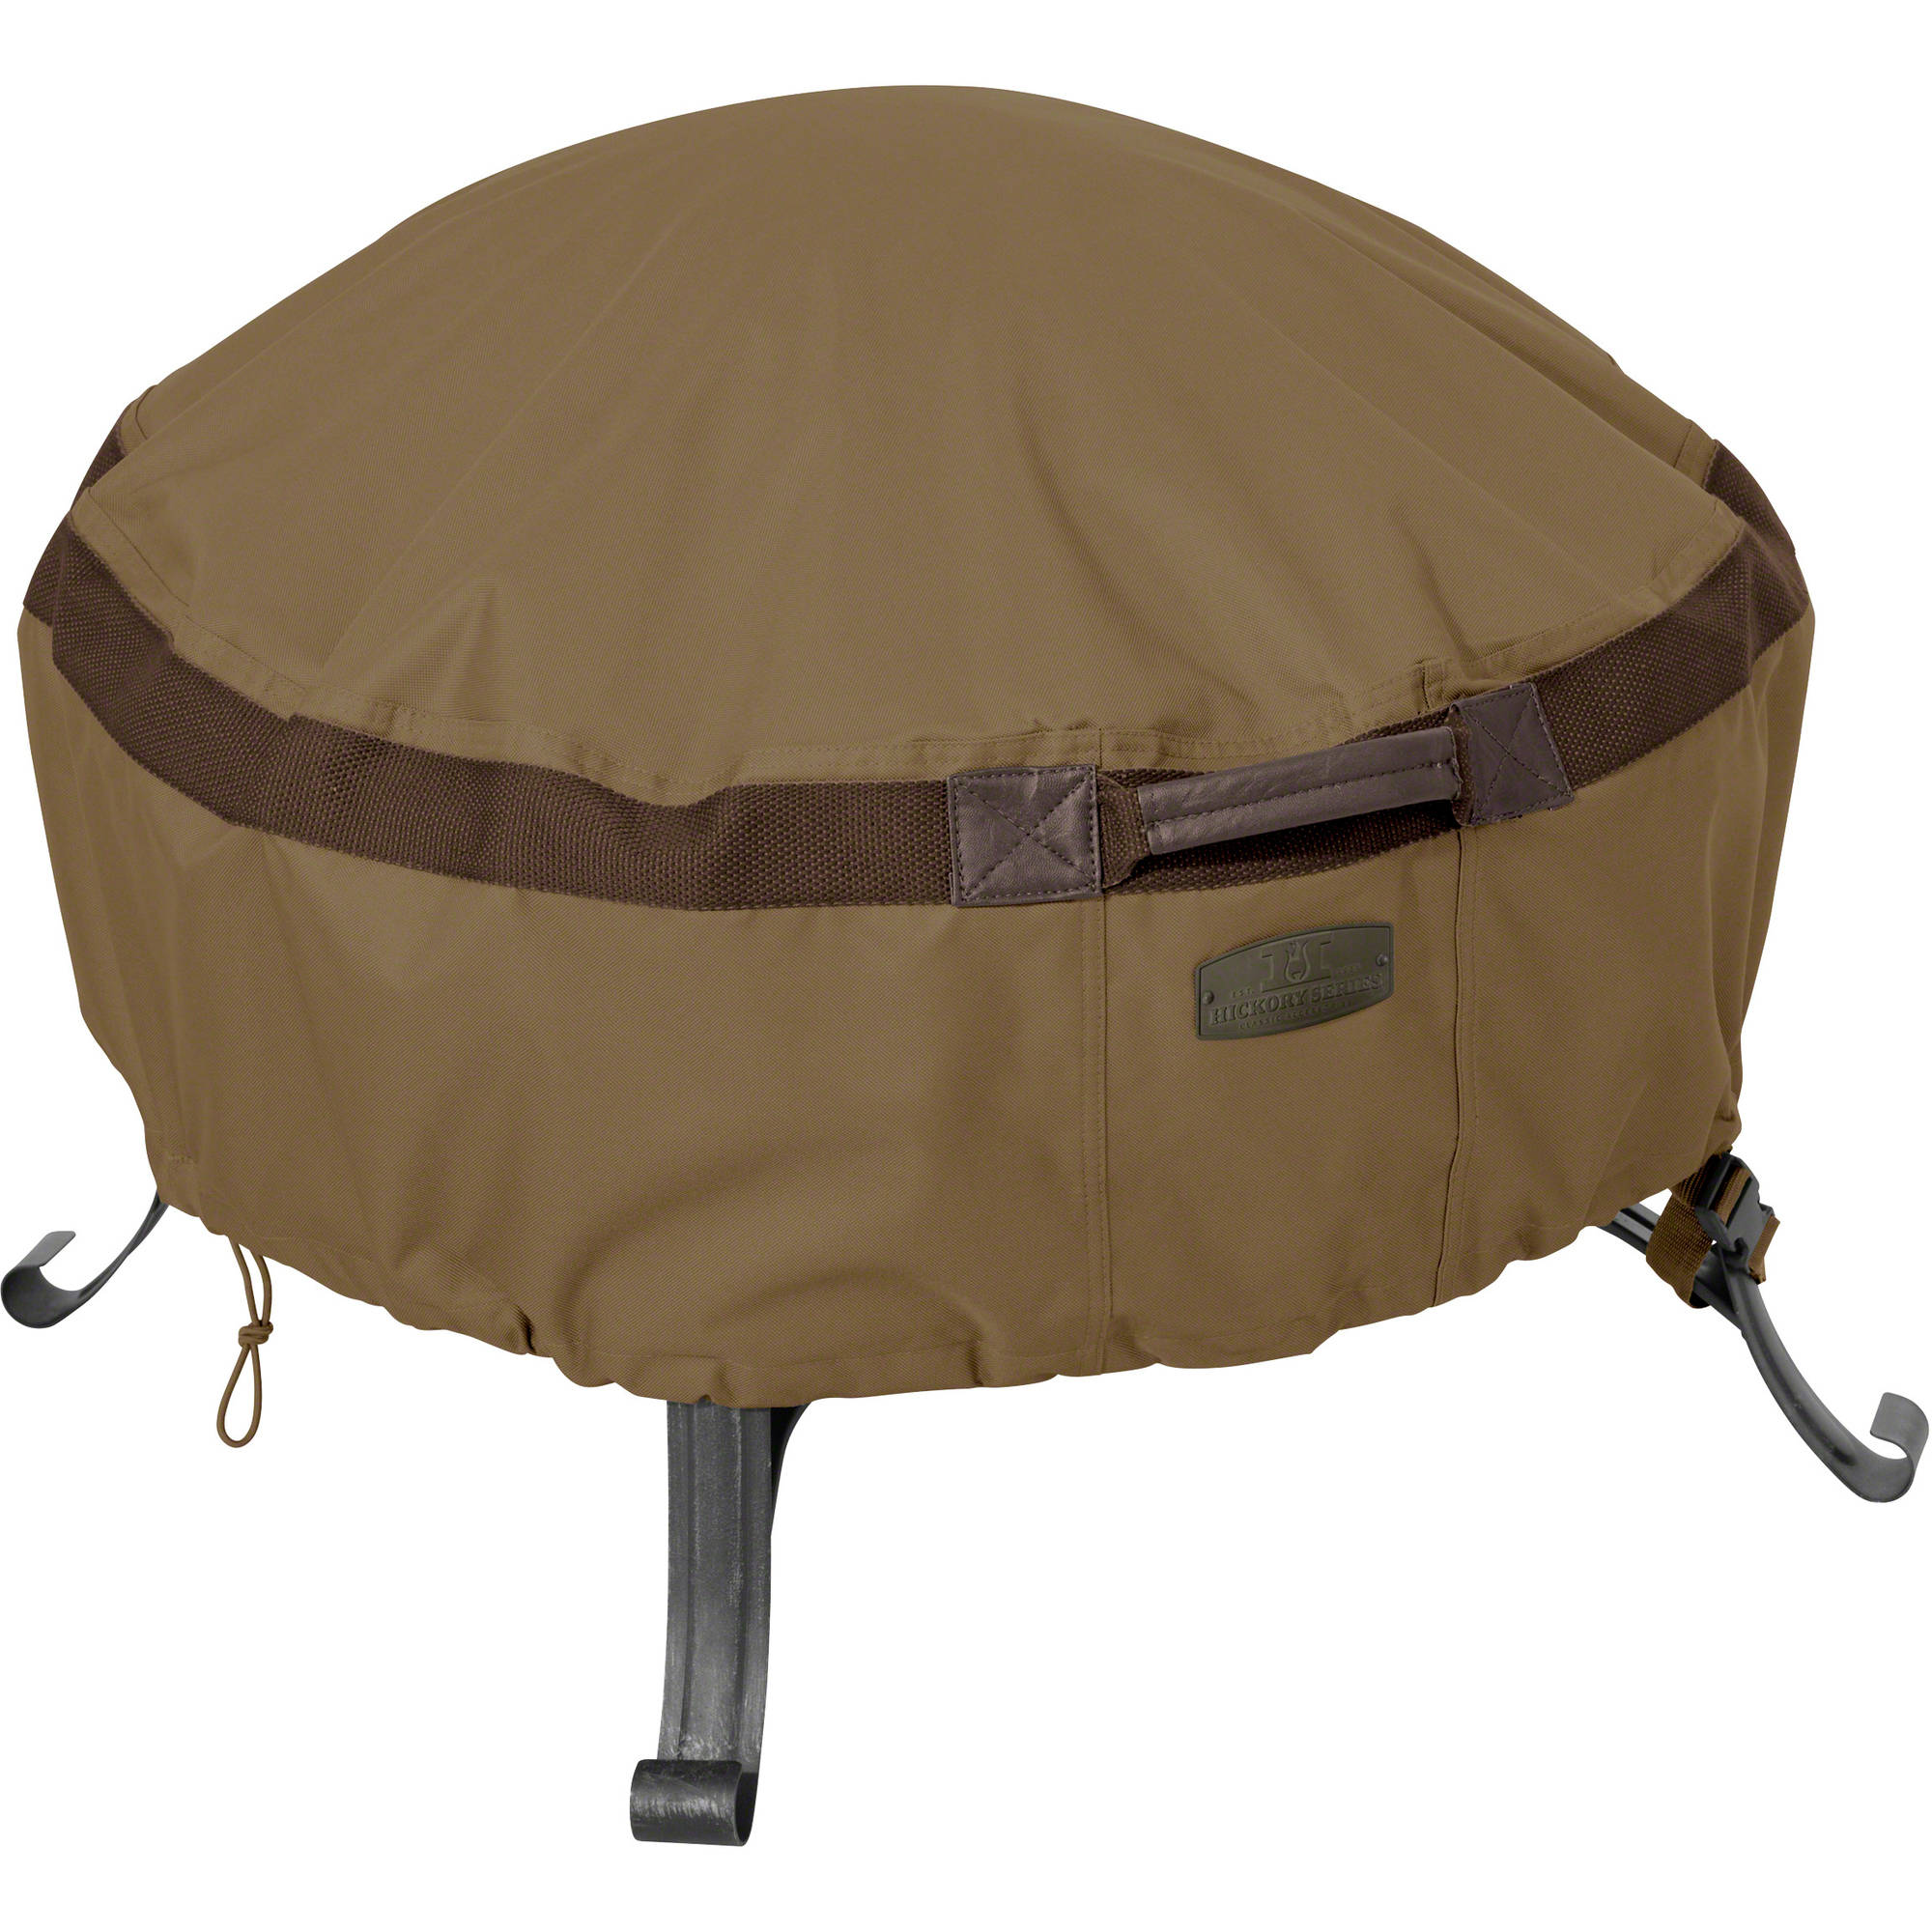 Classic Accessories Hickory Heavy-Duty Full Coverage Fire Pit Patio Storage Cover, Round